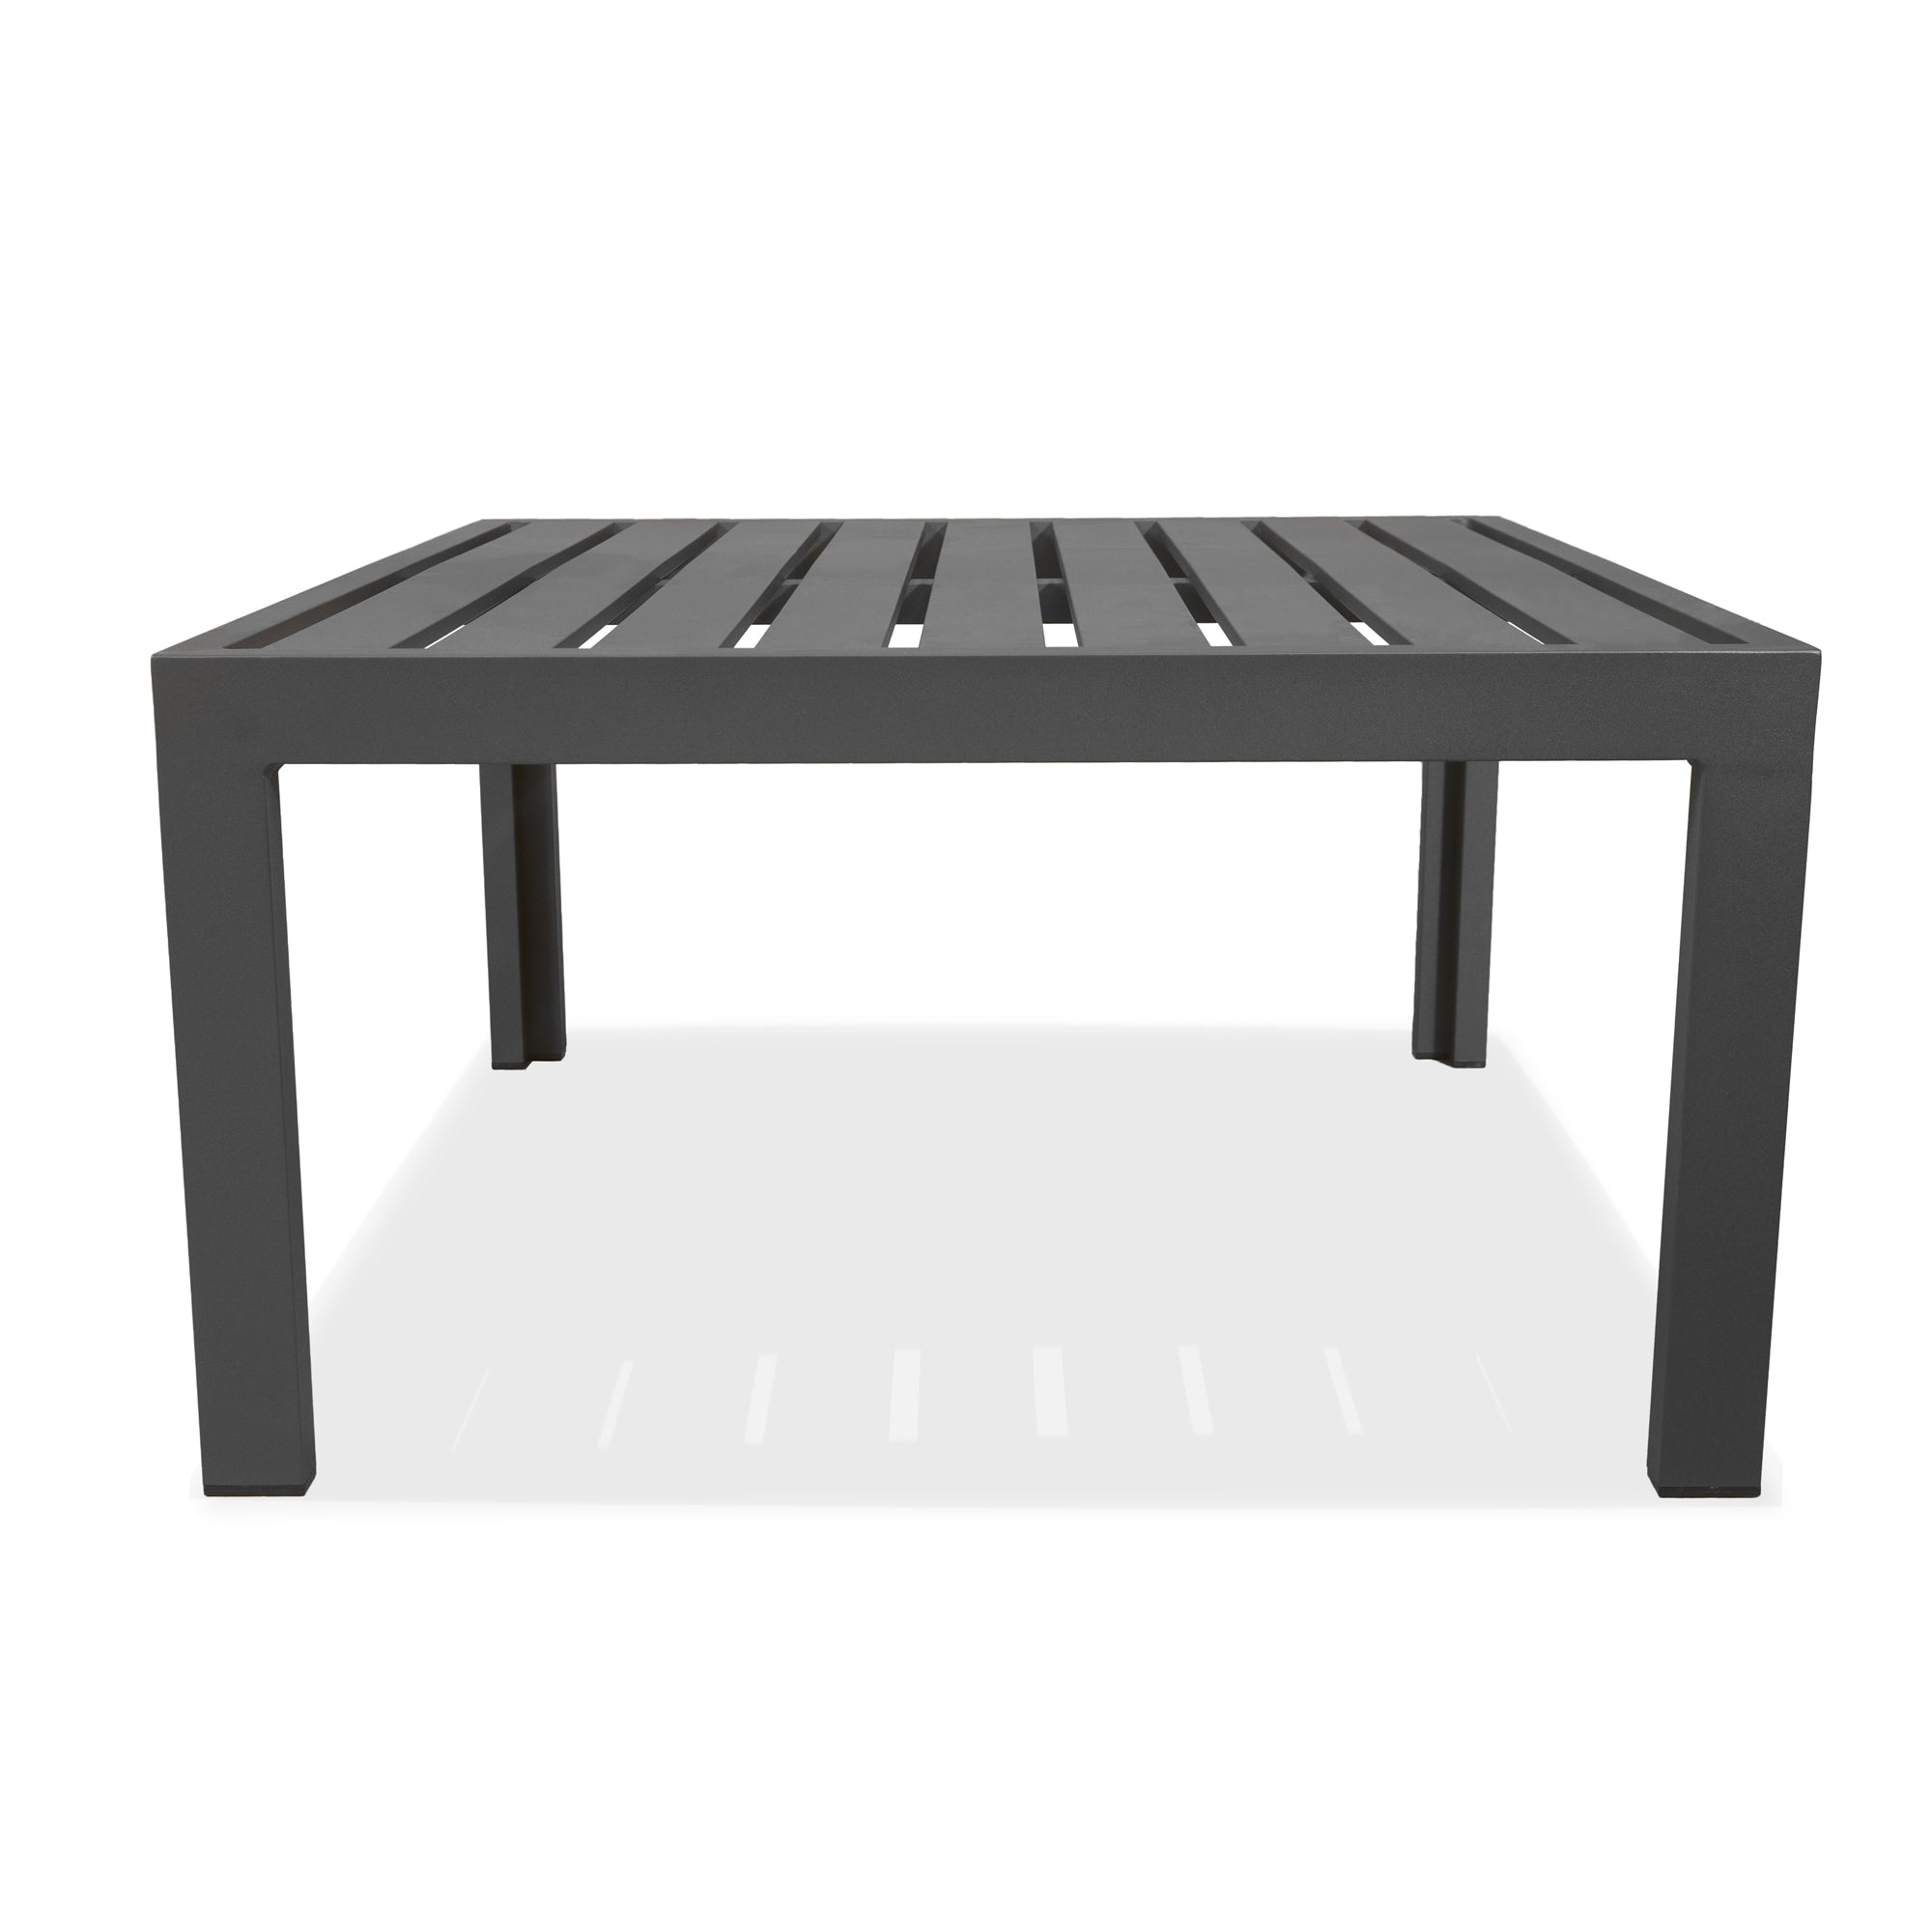 Evette Outdoor Coffee Table in Anthracite